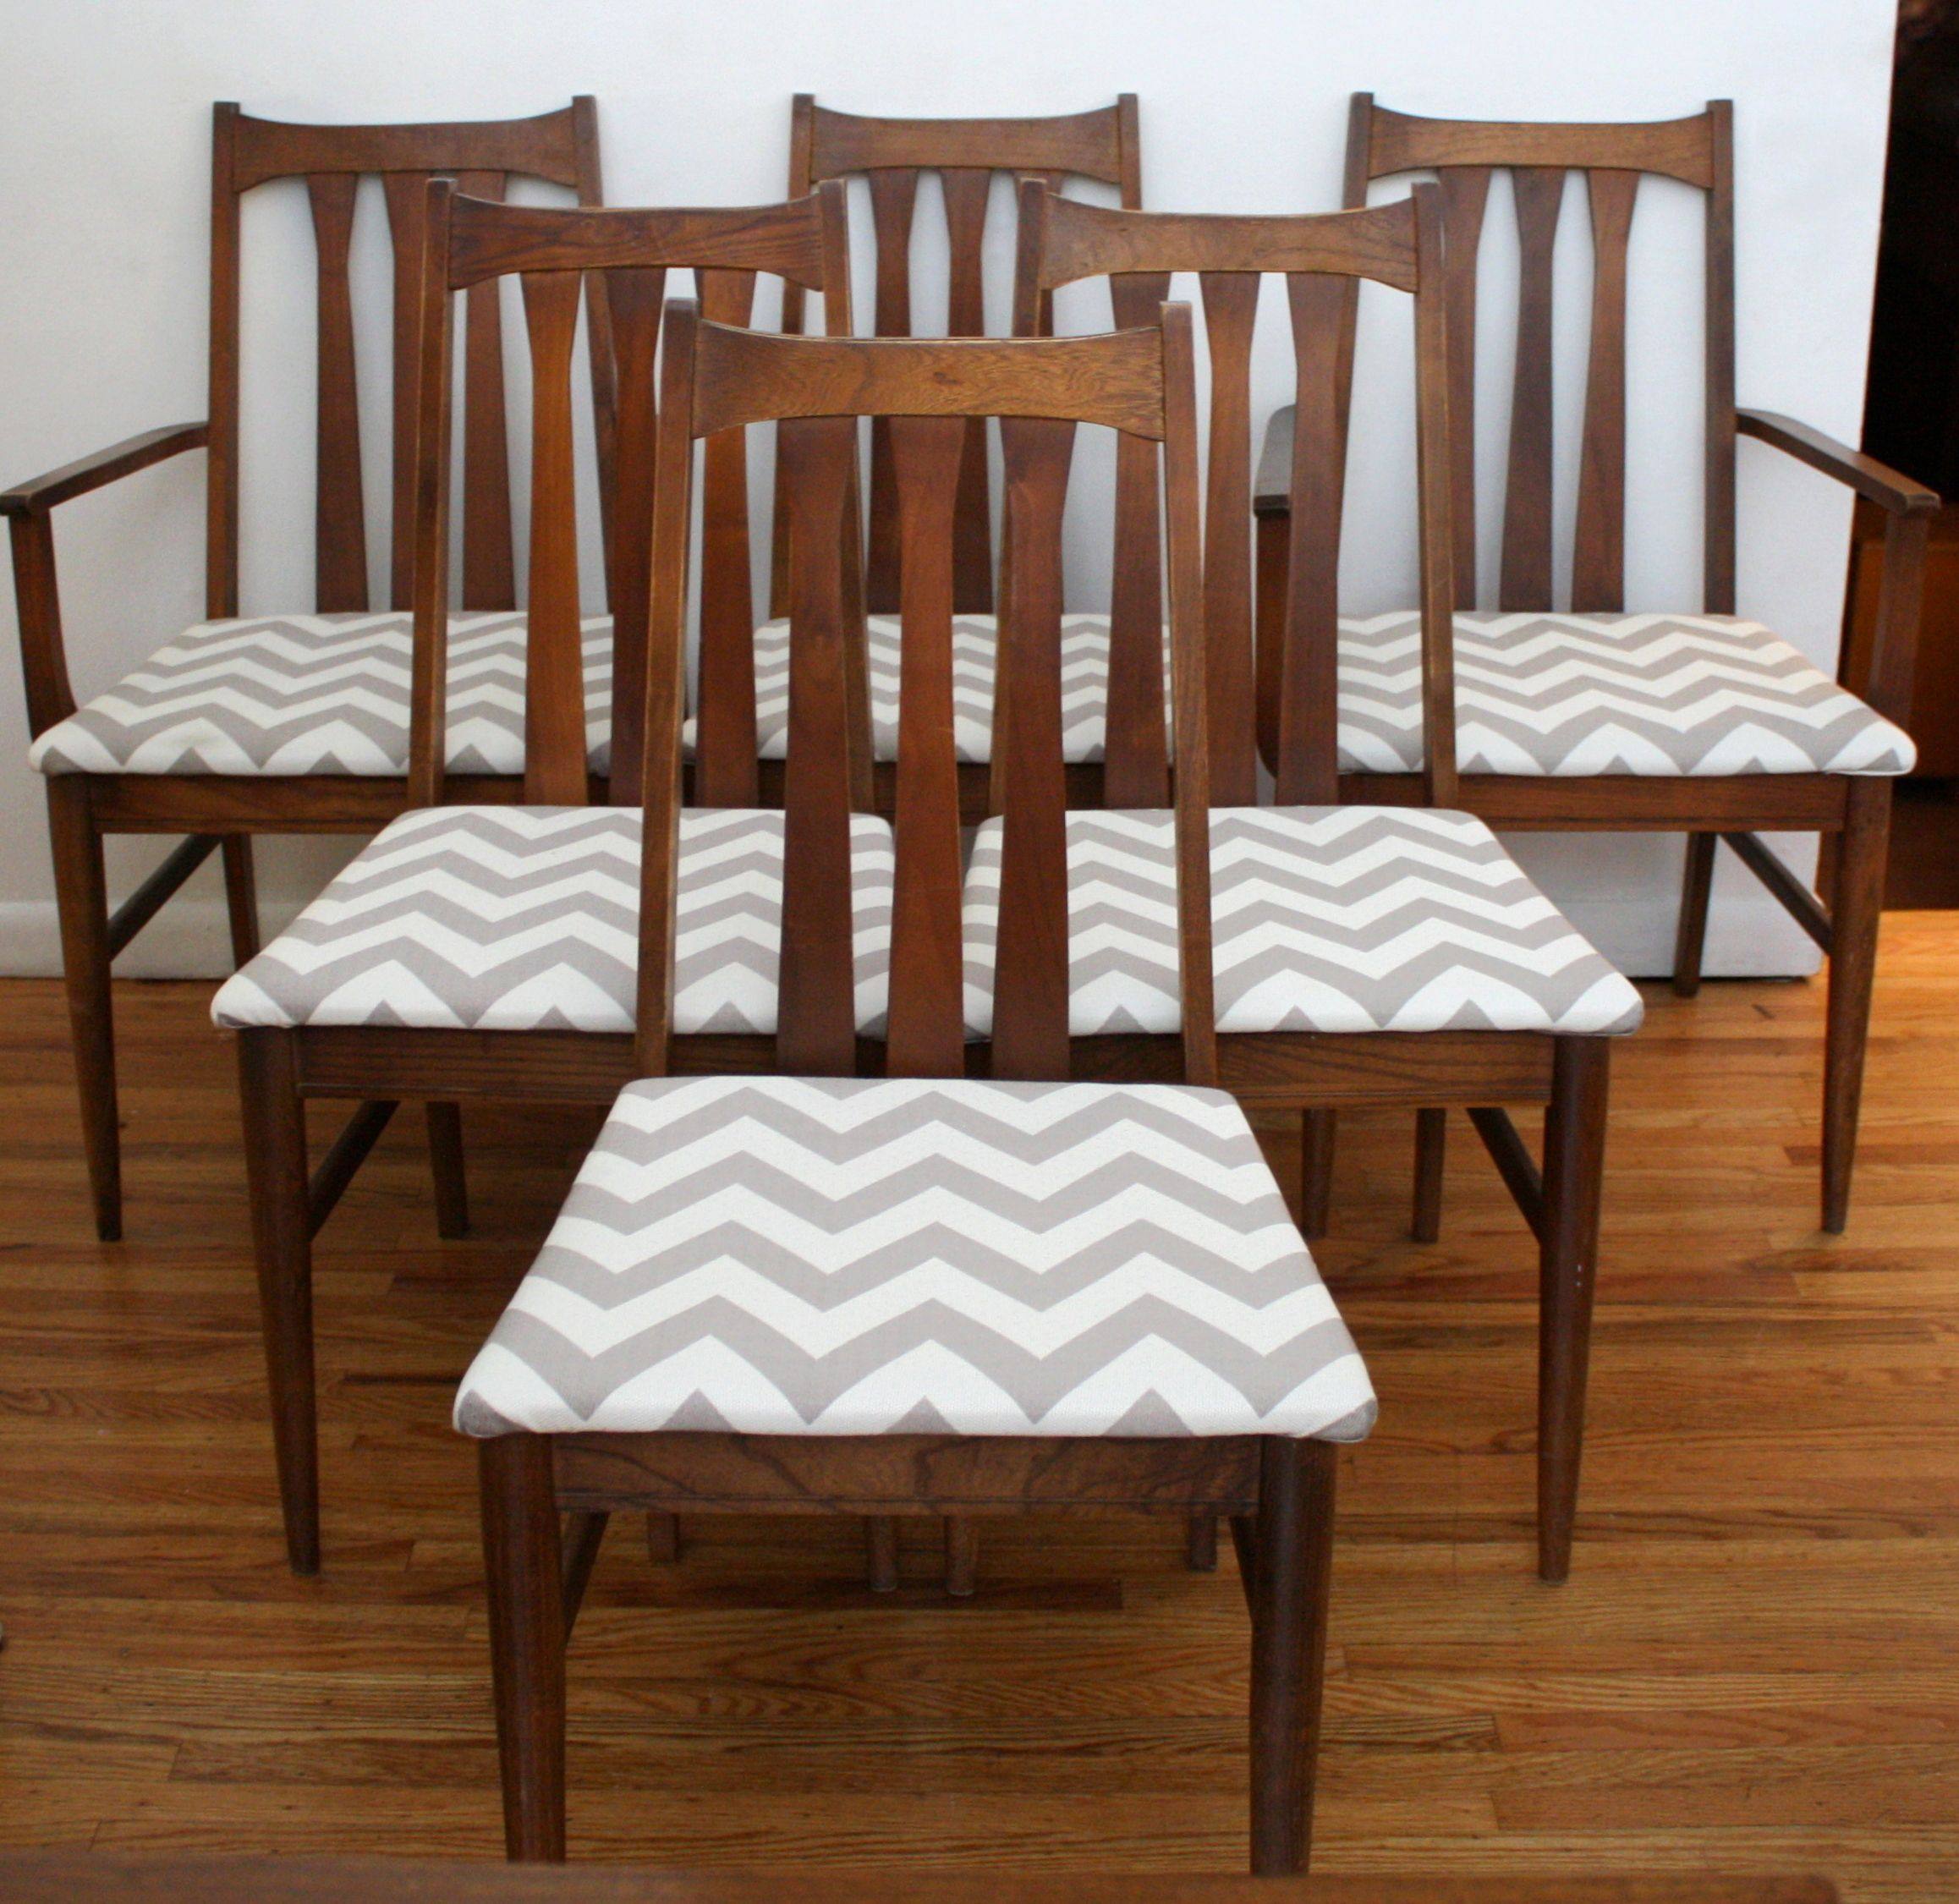 slat back chairs. Mid Century Modern Dining Chair Set With Vertical Slat Backs And Newly Covered Upholstered Seats Back Chairs B